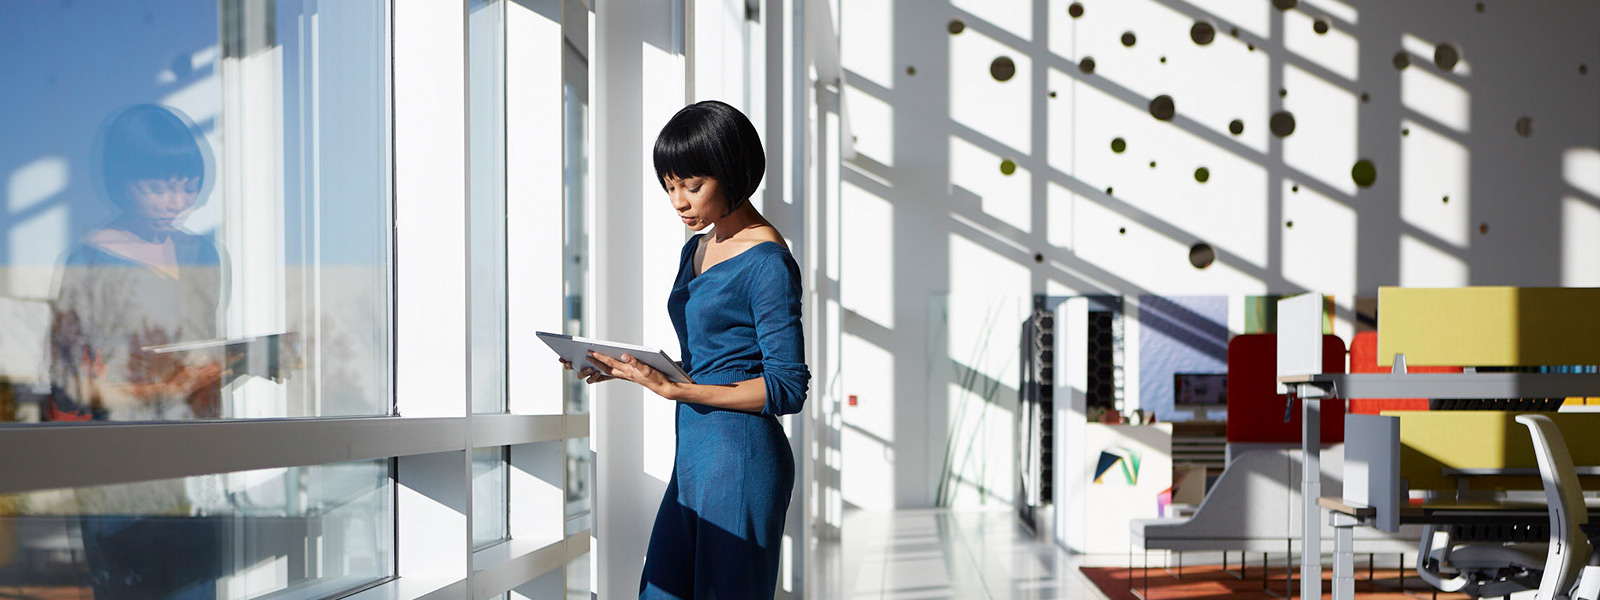 Woman using Surface Book in clipboard mode, standing in an office.